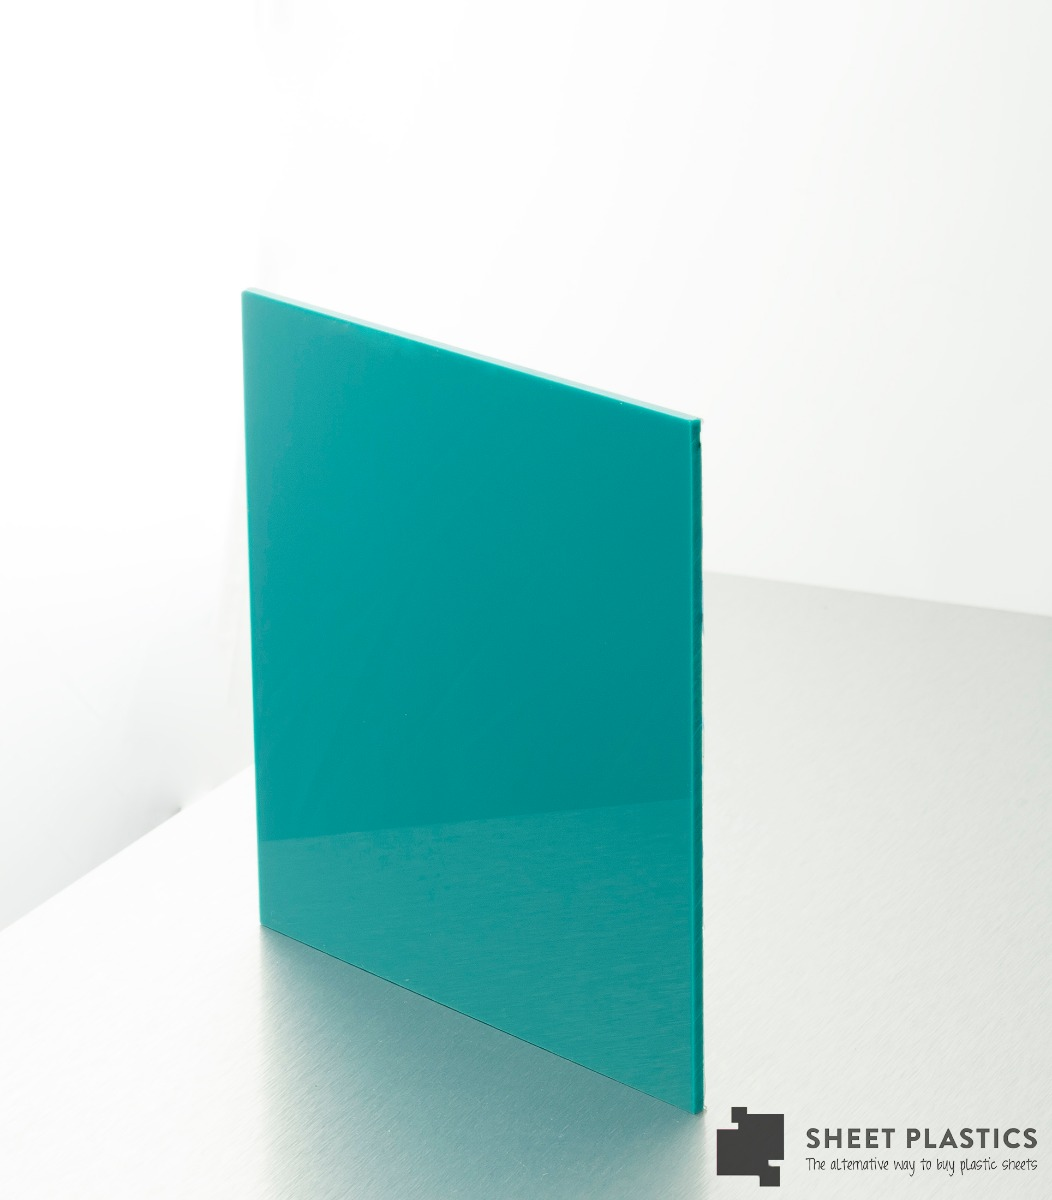 5mm Turquoise Acrylic Sample 150 X 150mm